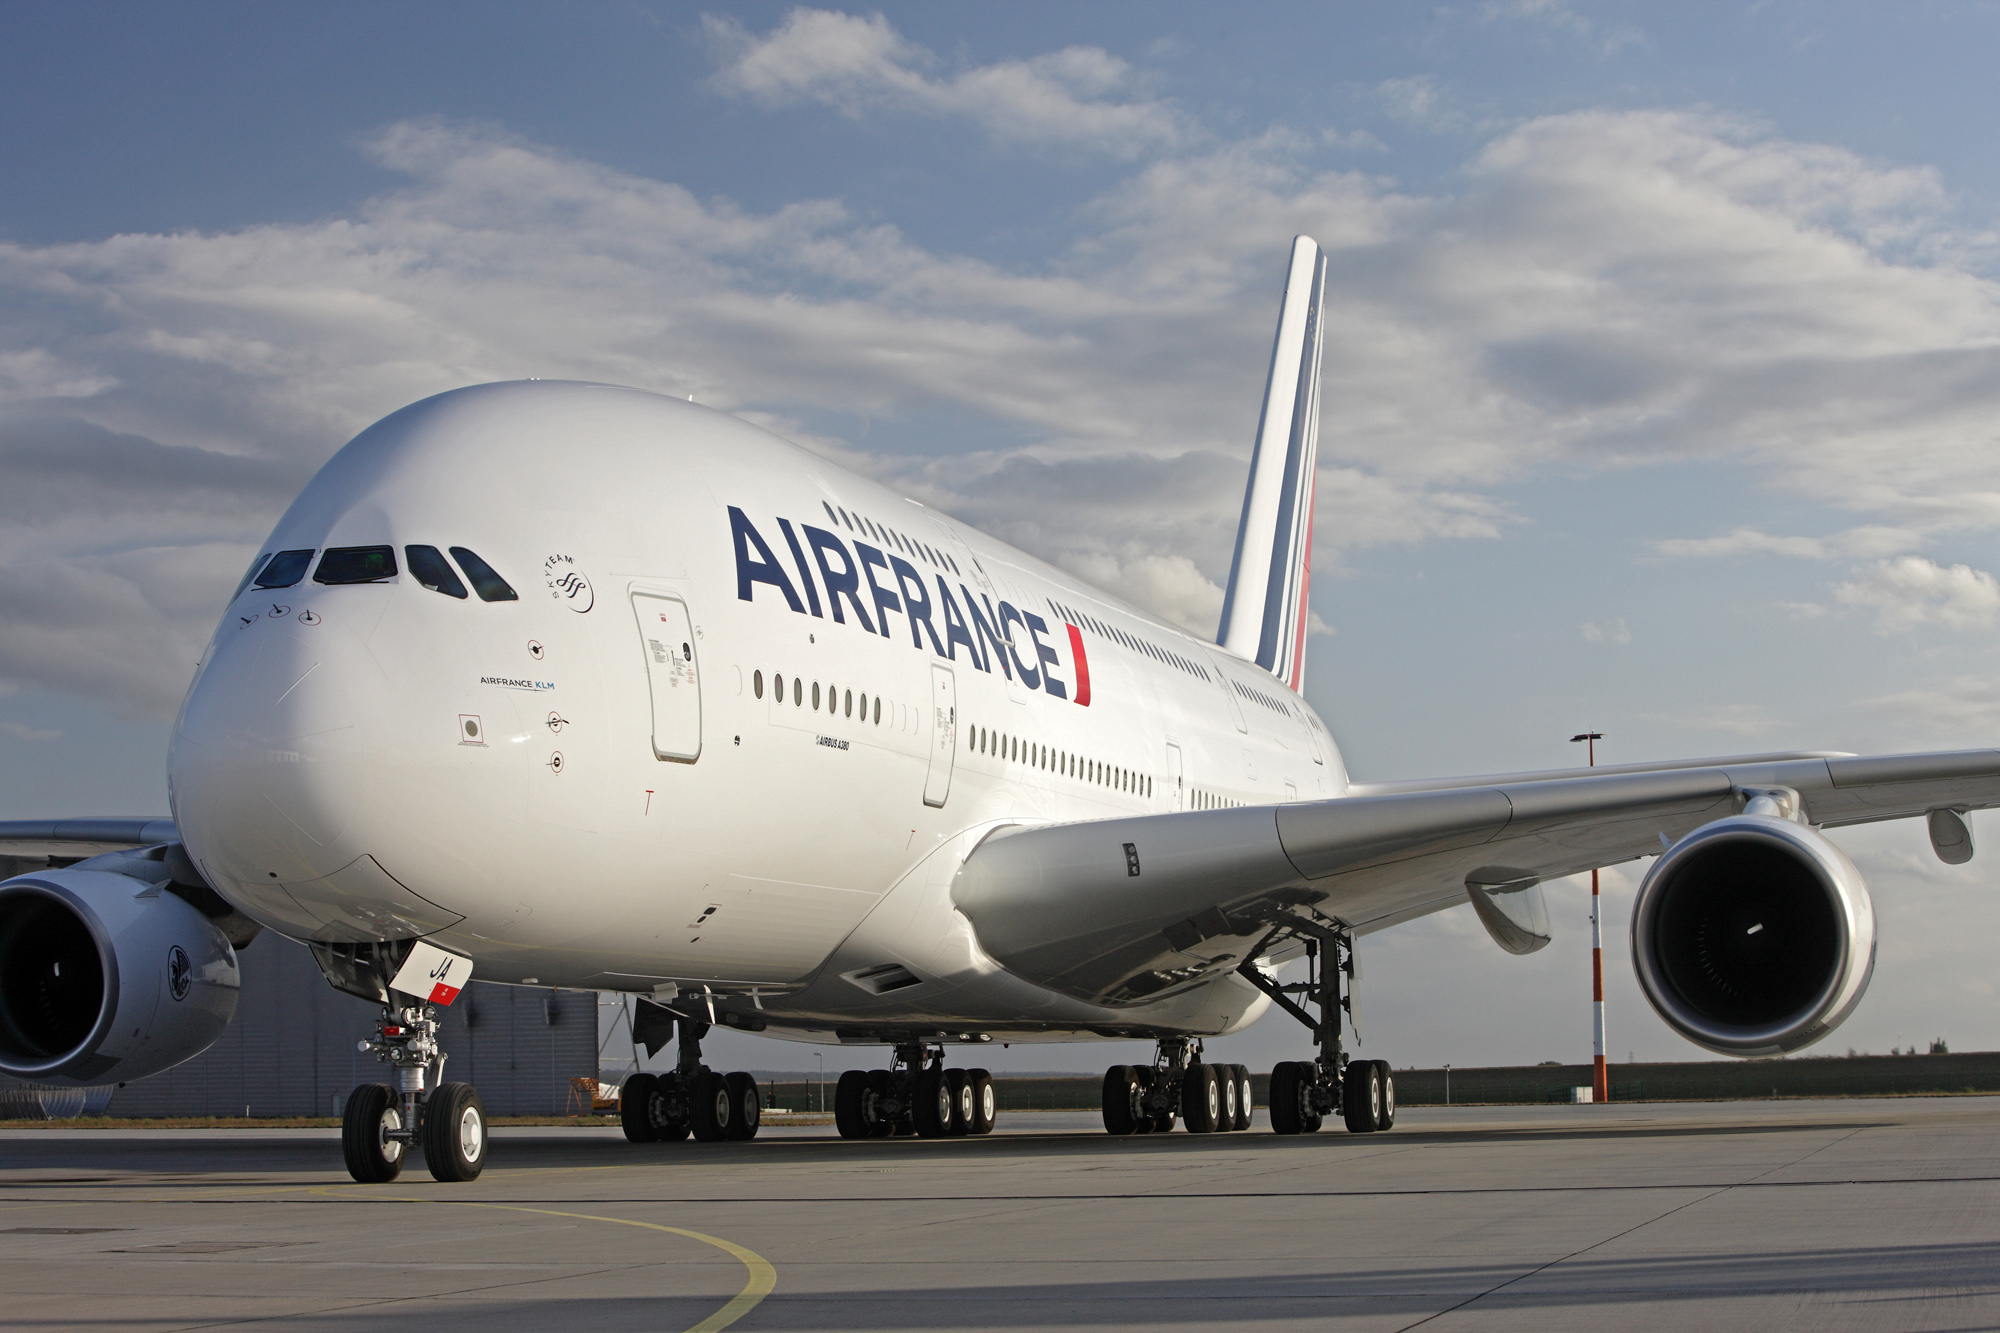 The Air France A380 : First Air France Airbus A380 taking off